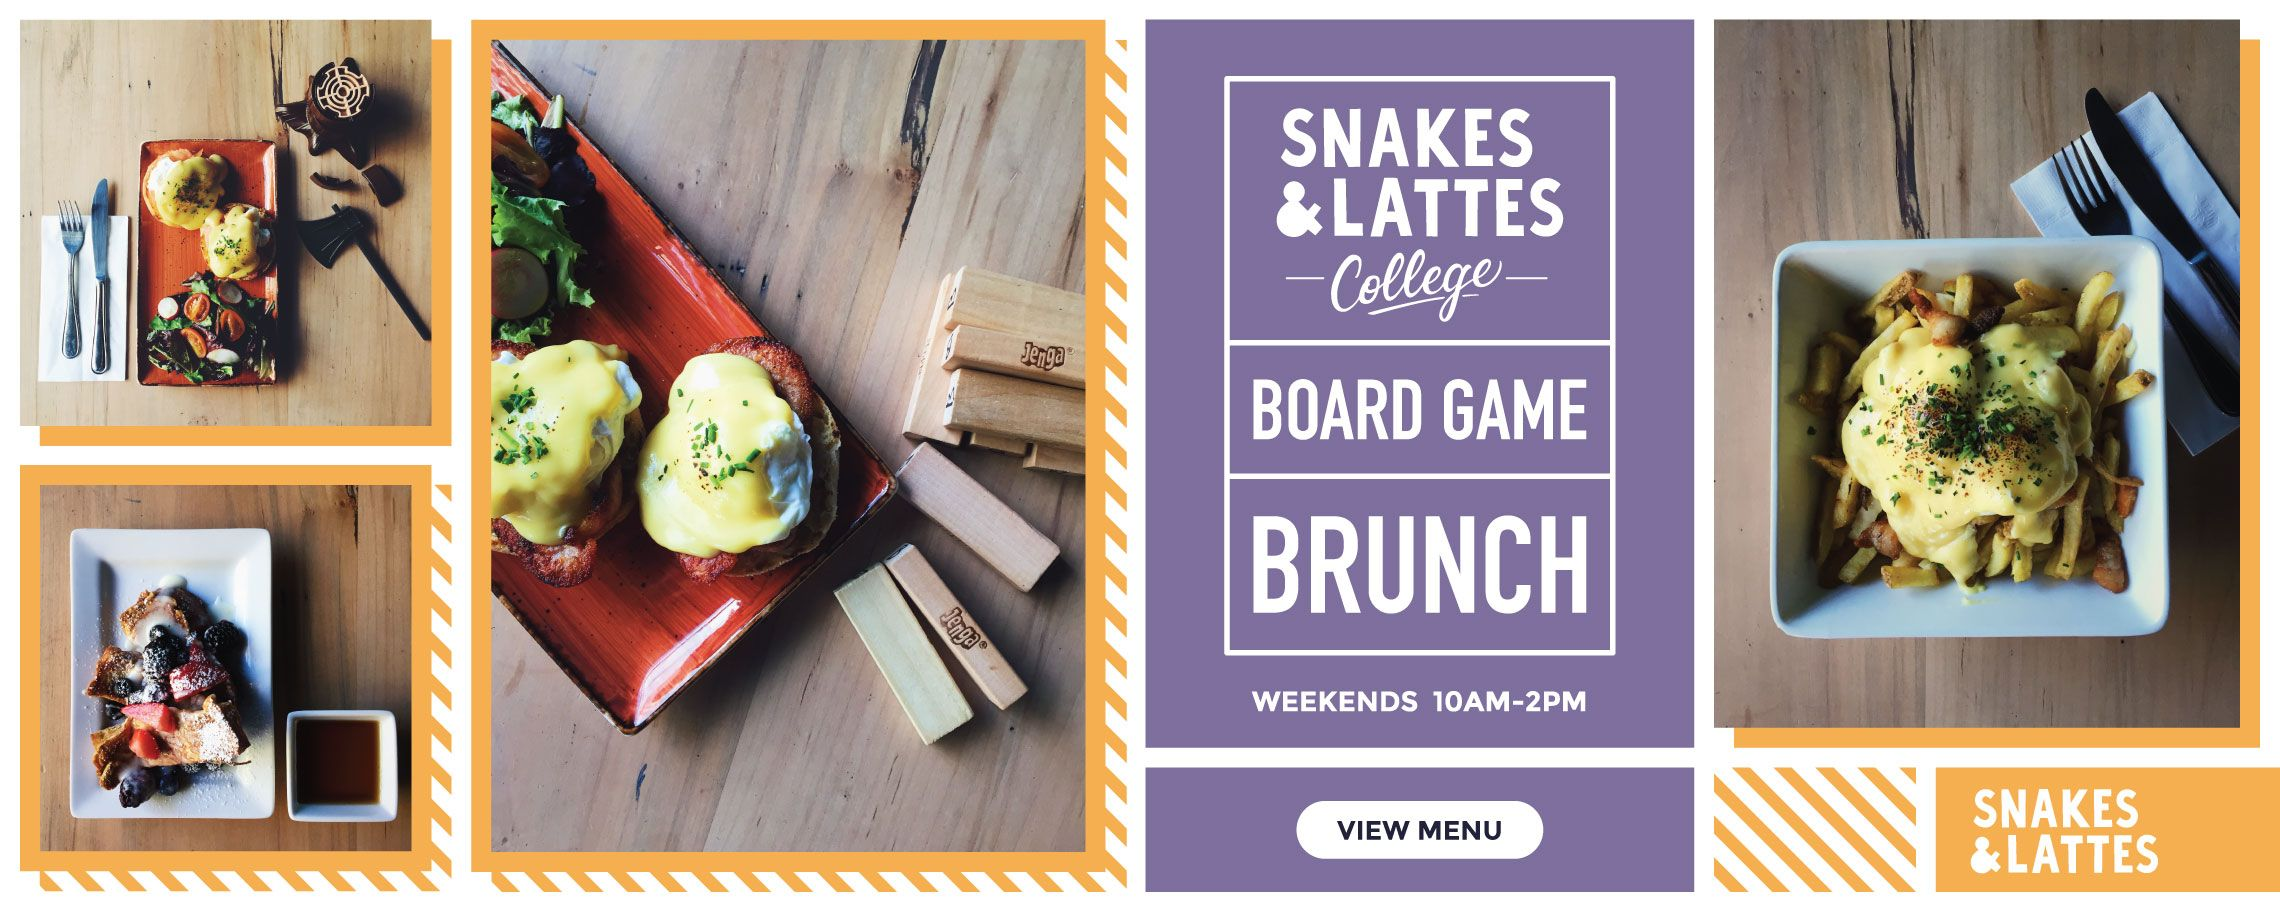 Pin by Angela B on C&I Adventures Board game cafe, Game